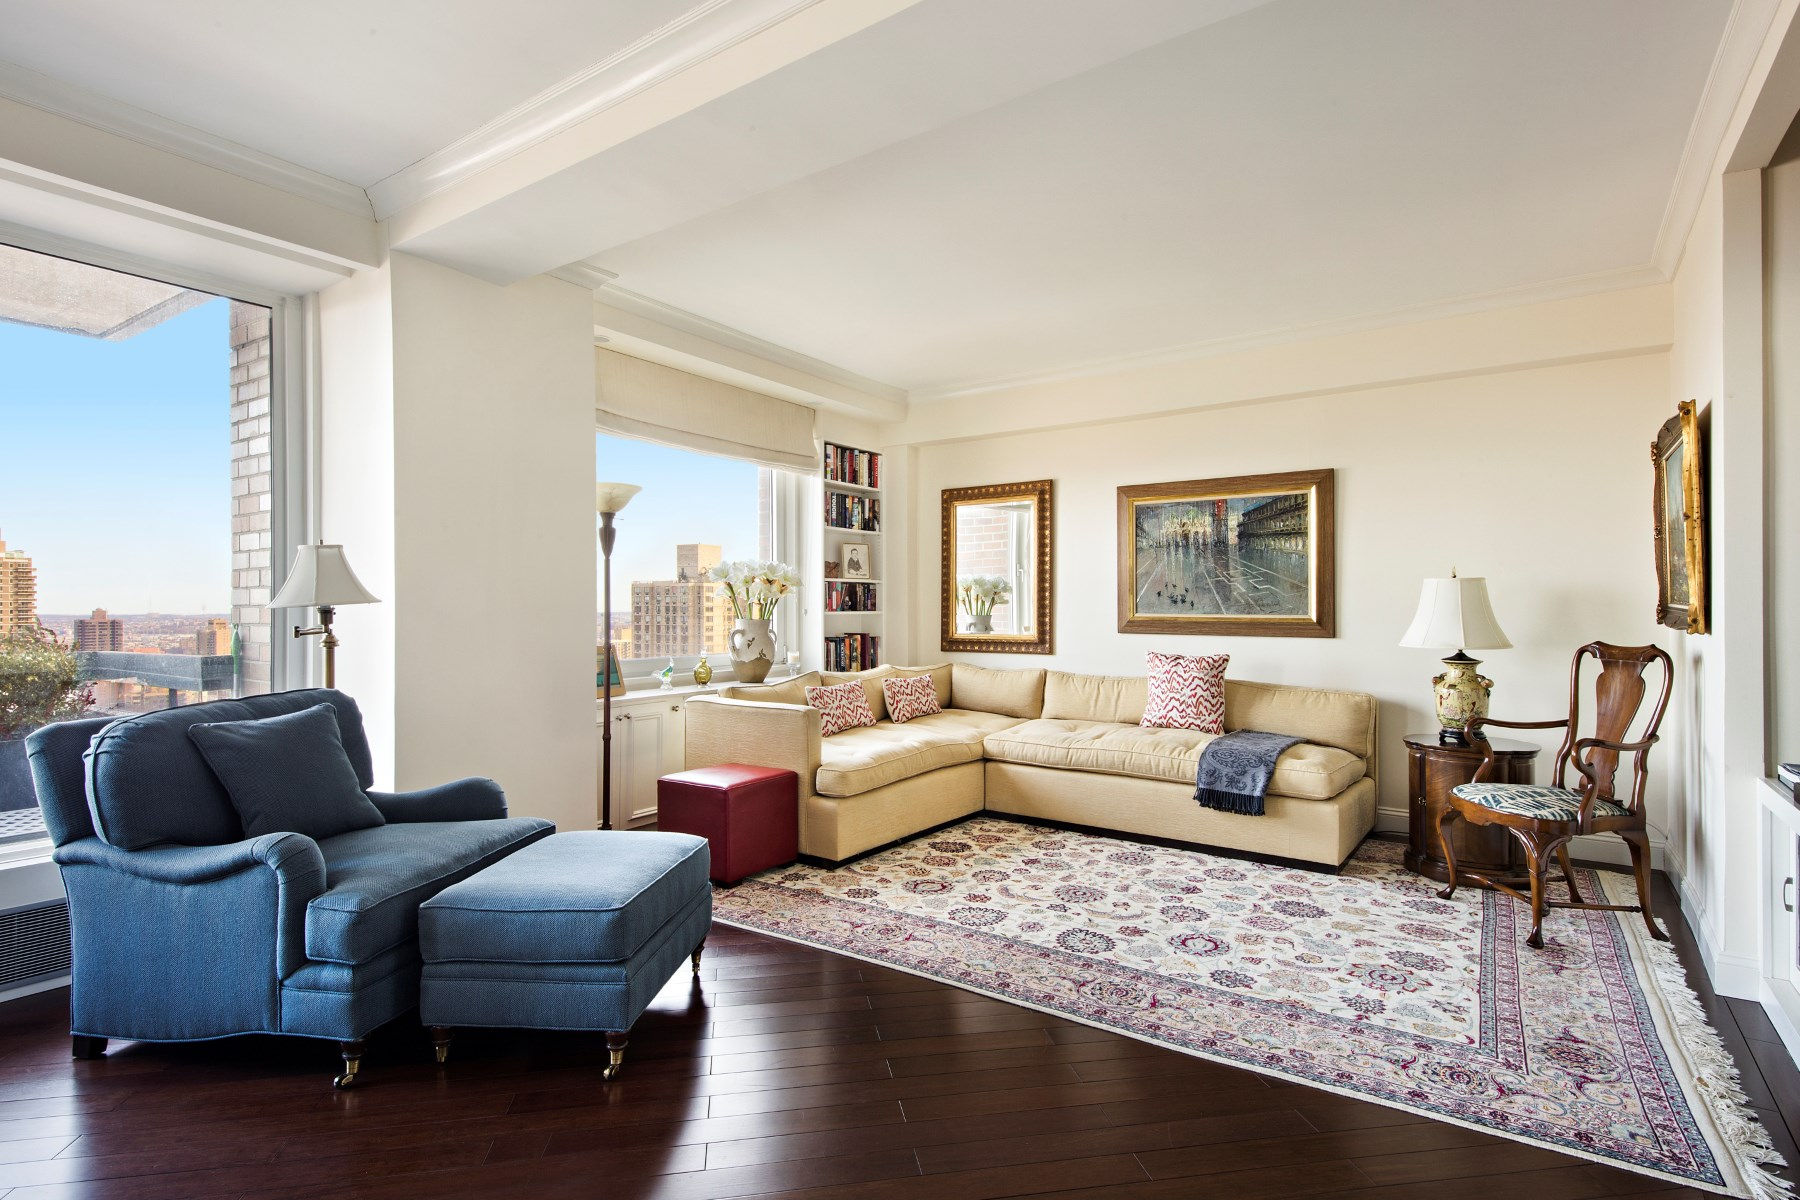 Condominium for Sale at 45 East 89th Street, Residence 37FS 45 East 89th Street Apt 37FS Upper East Side, New York, New York, 10128 United States